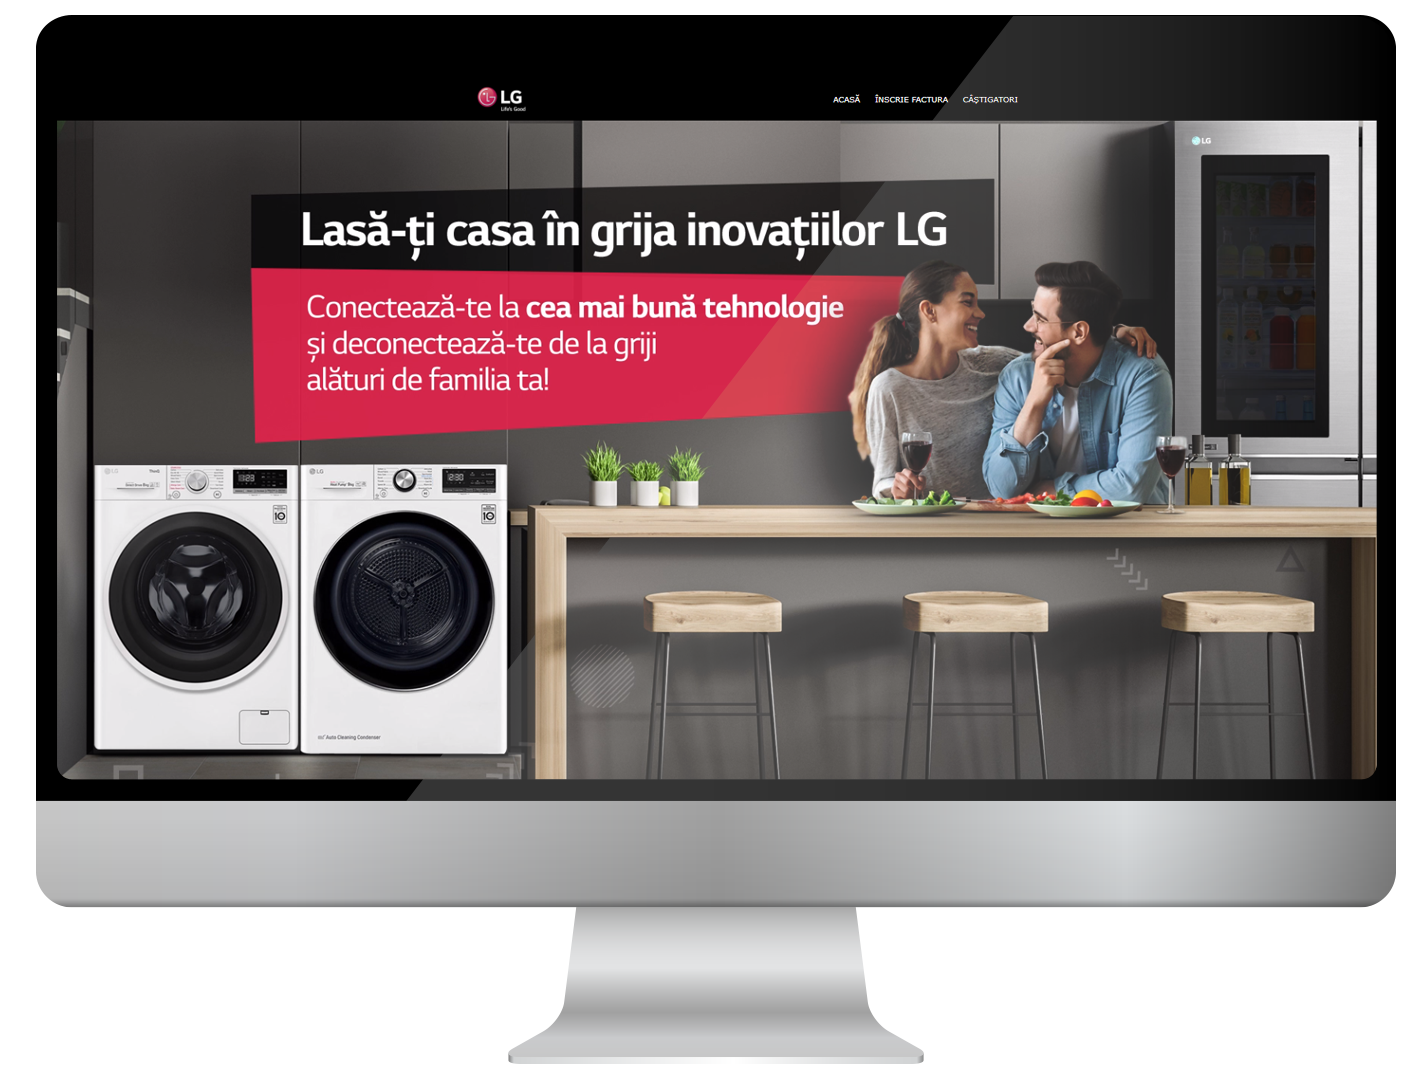 Mixing LG products into a new campaign